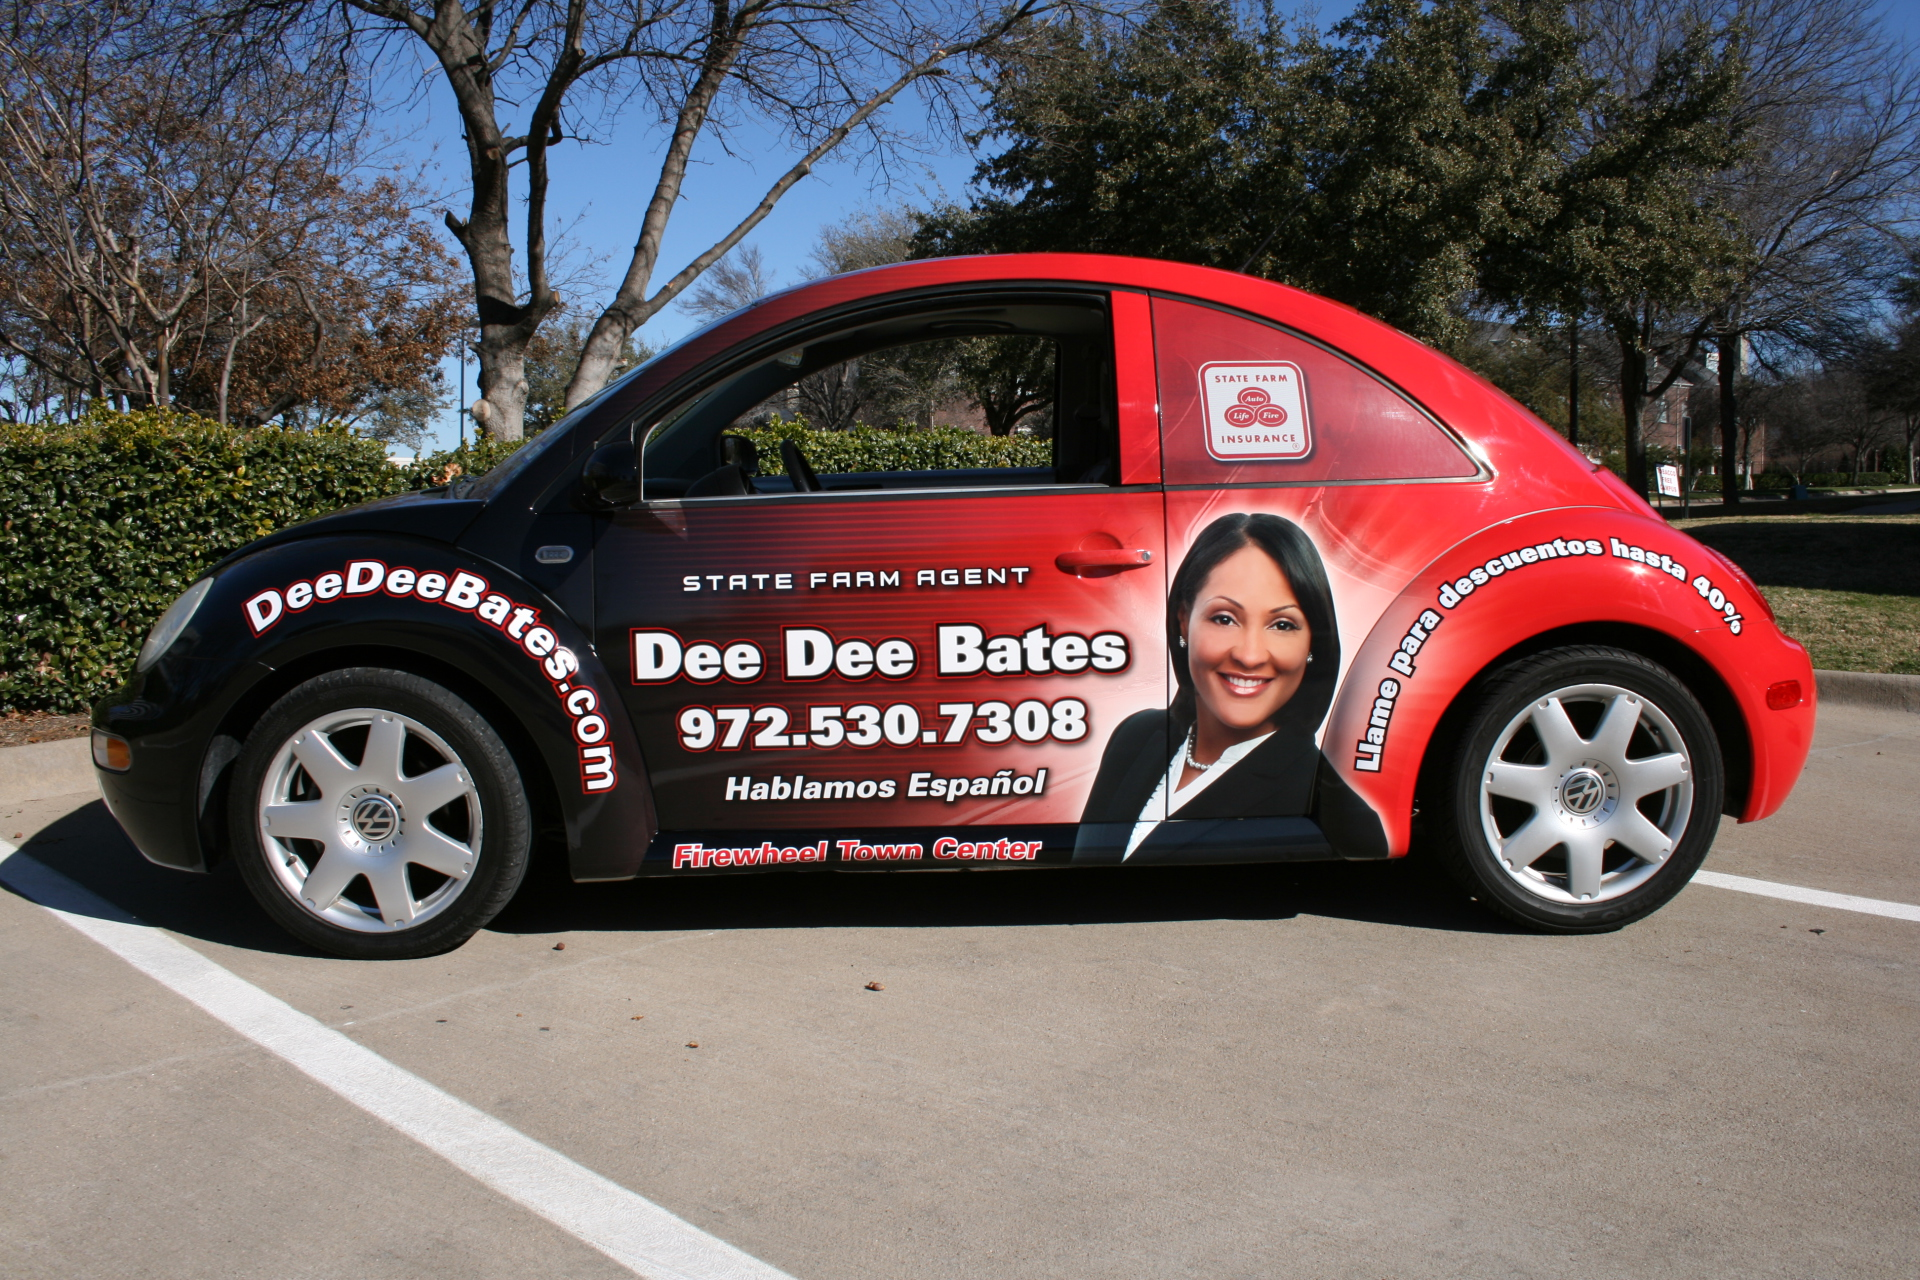 State Farm Agent Dee Dee Bates, State Farm Vehicle Wraps, vehicle wraps dallas tx